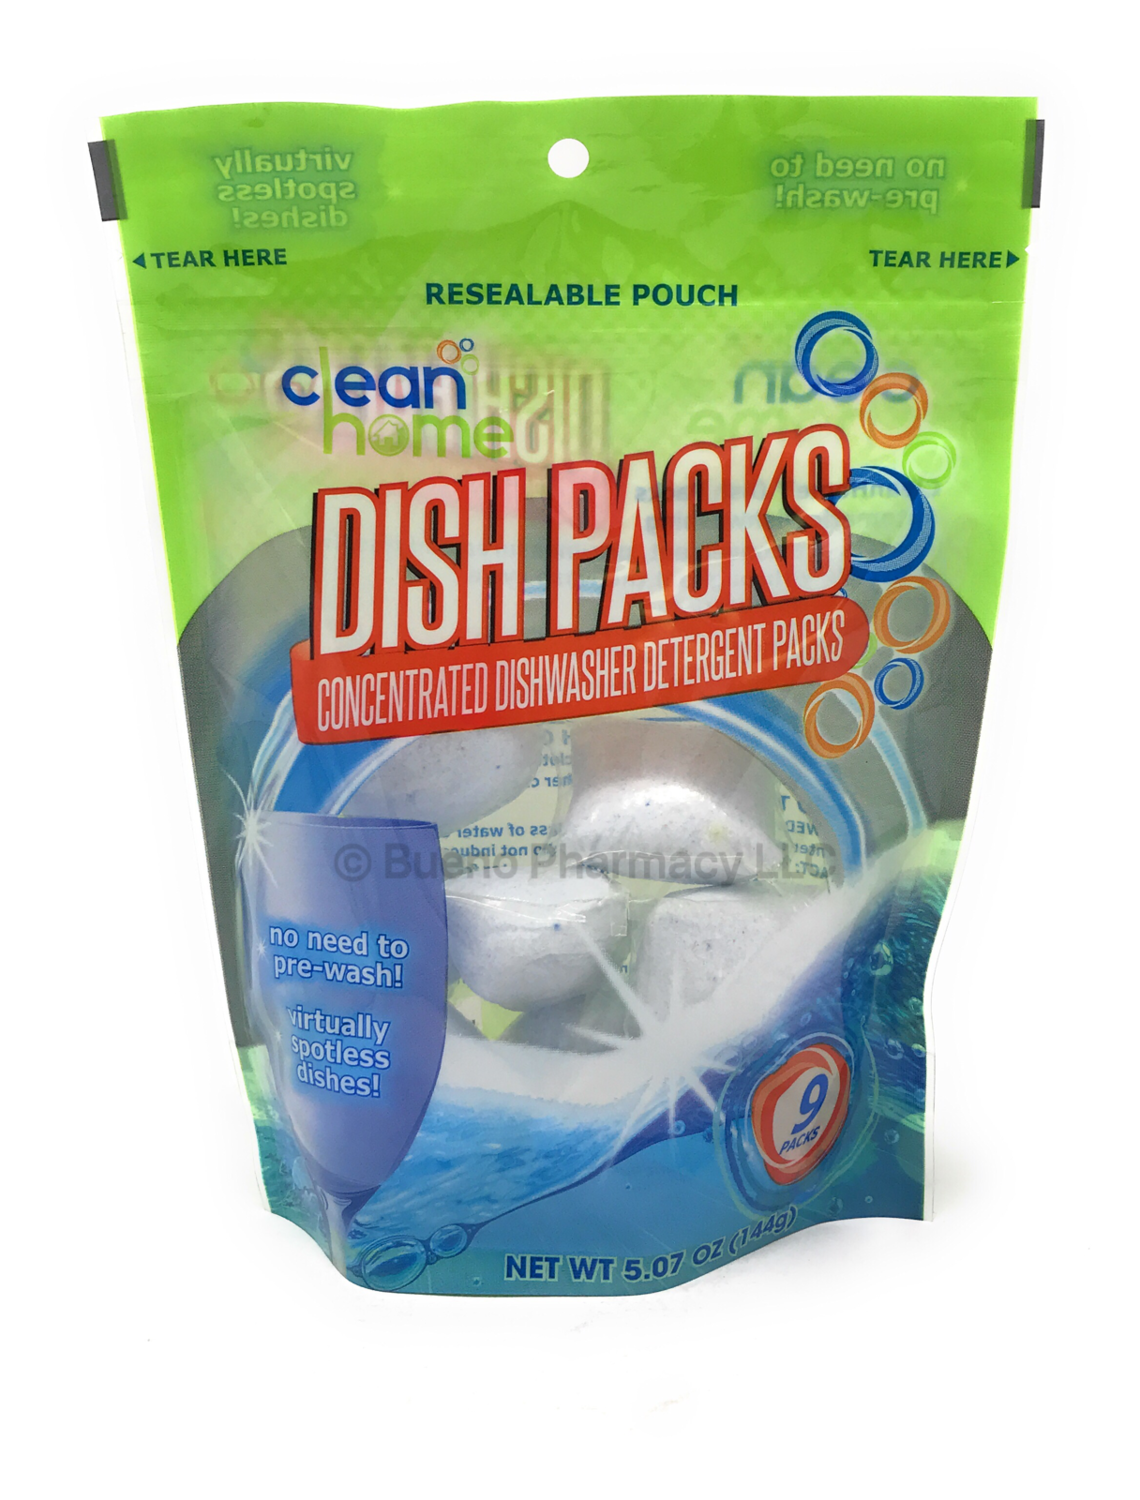 Dish Packs